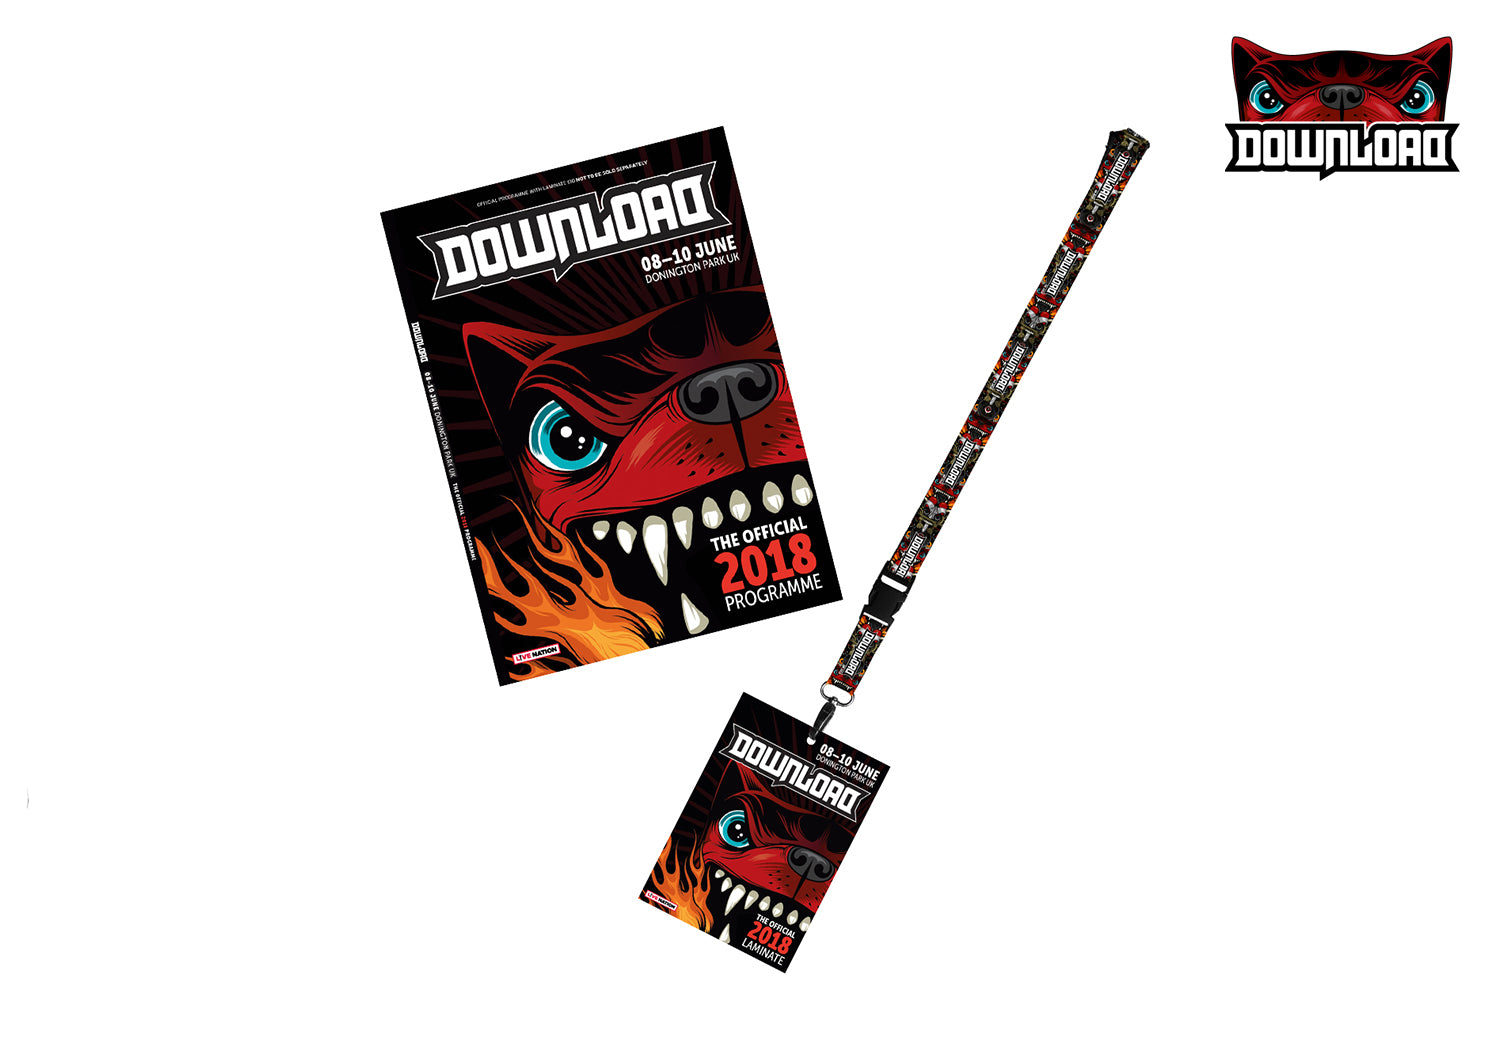 Download Lanyard Programme Set